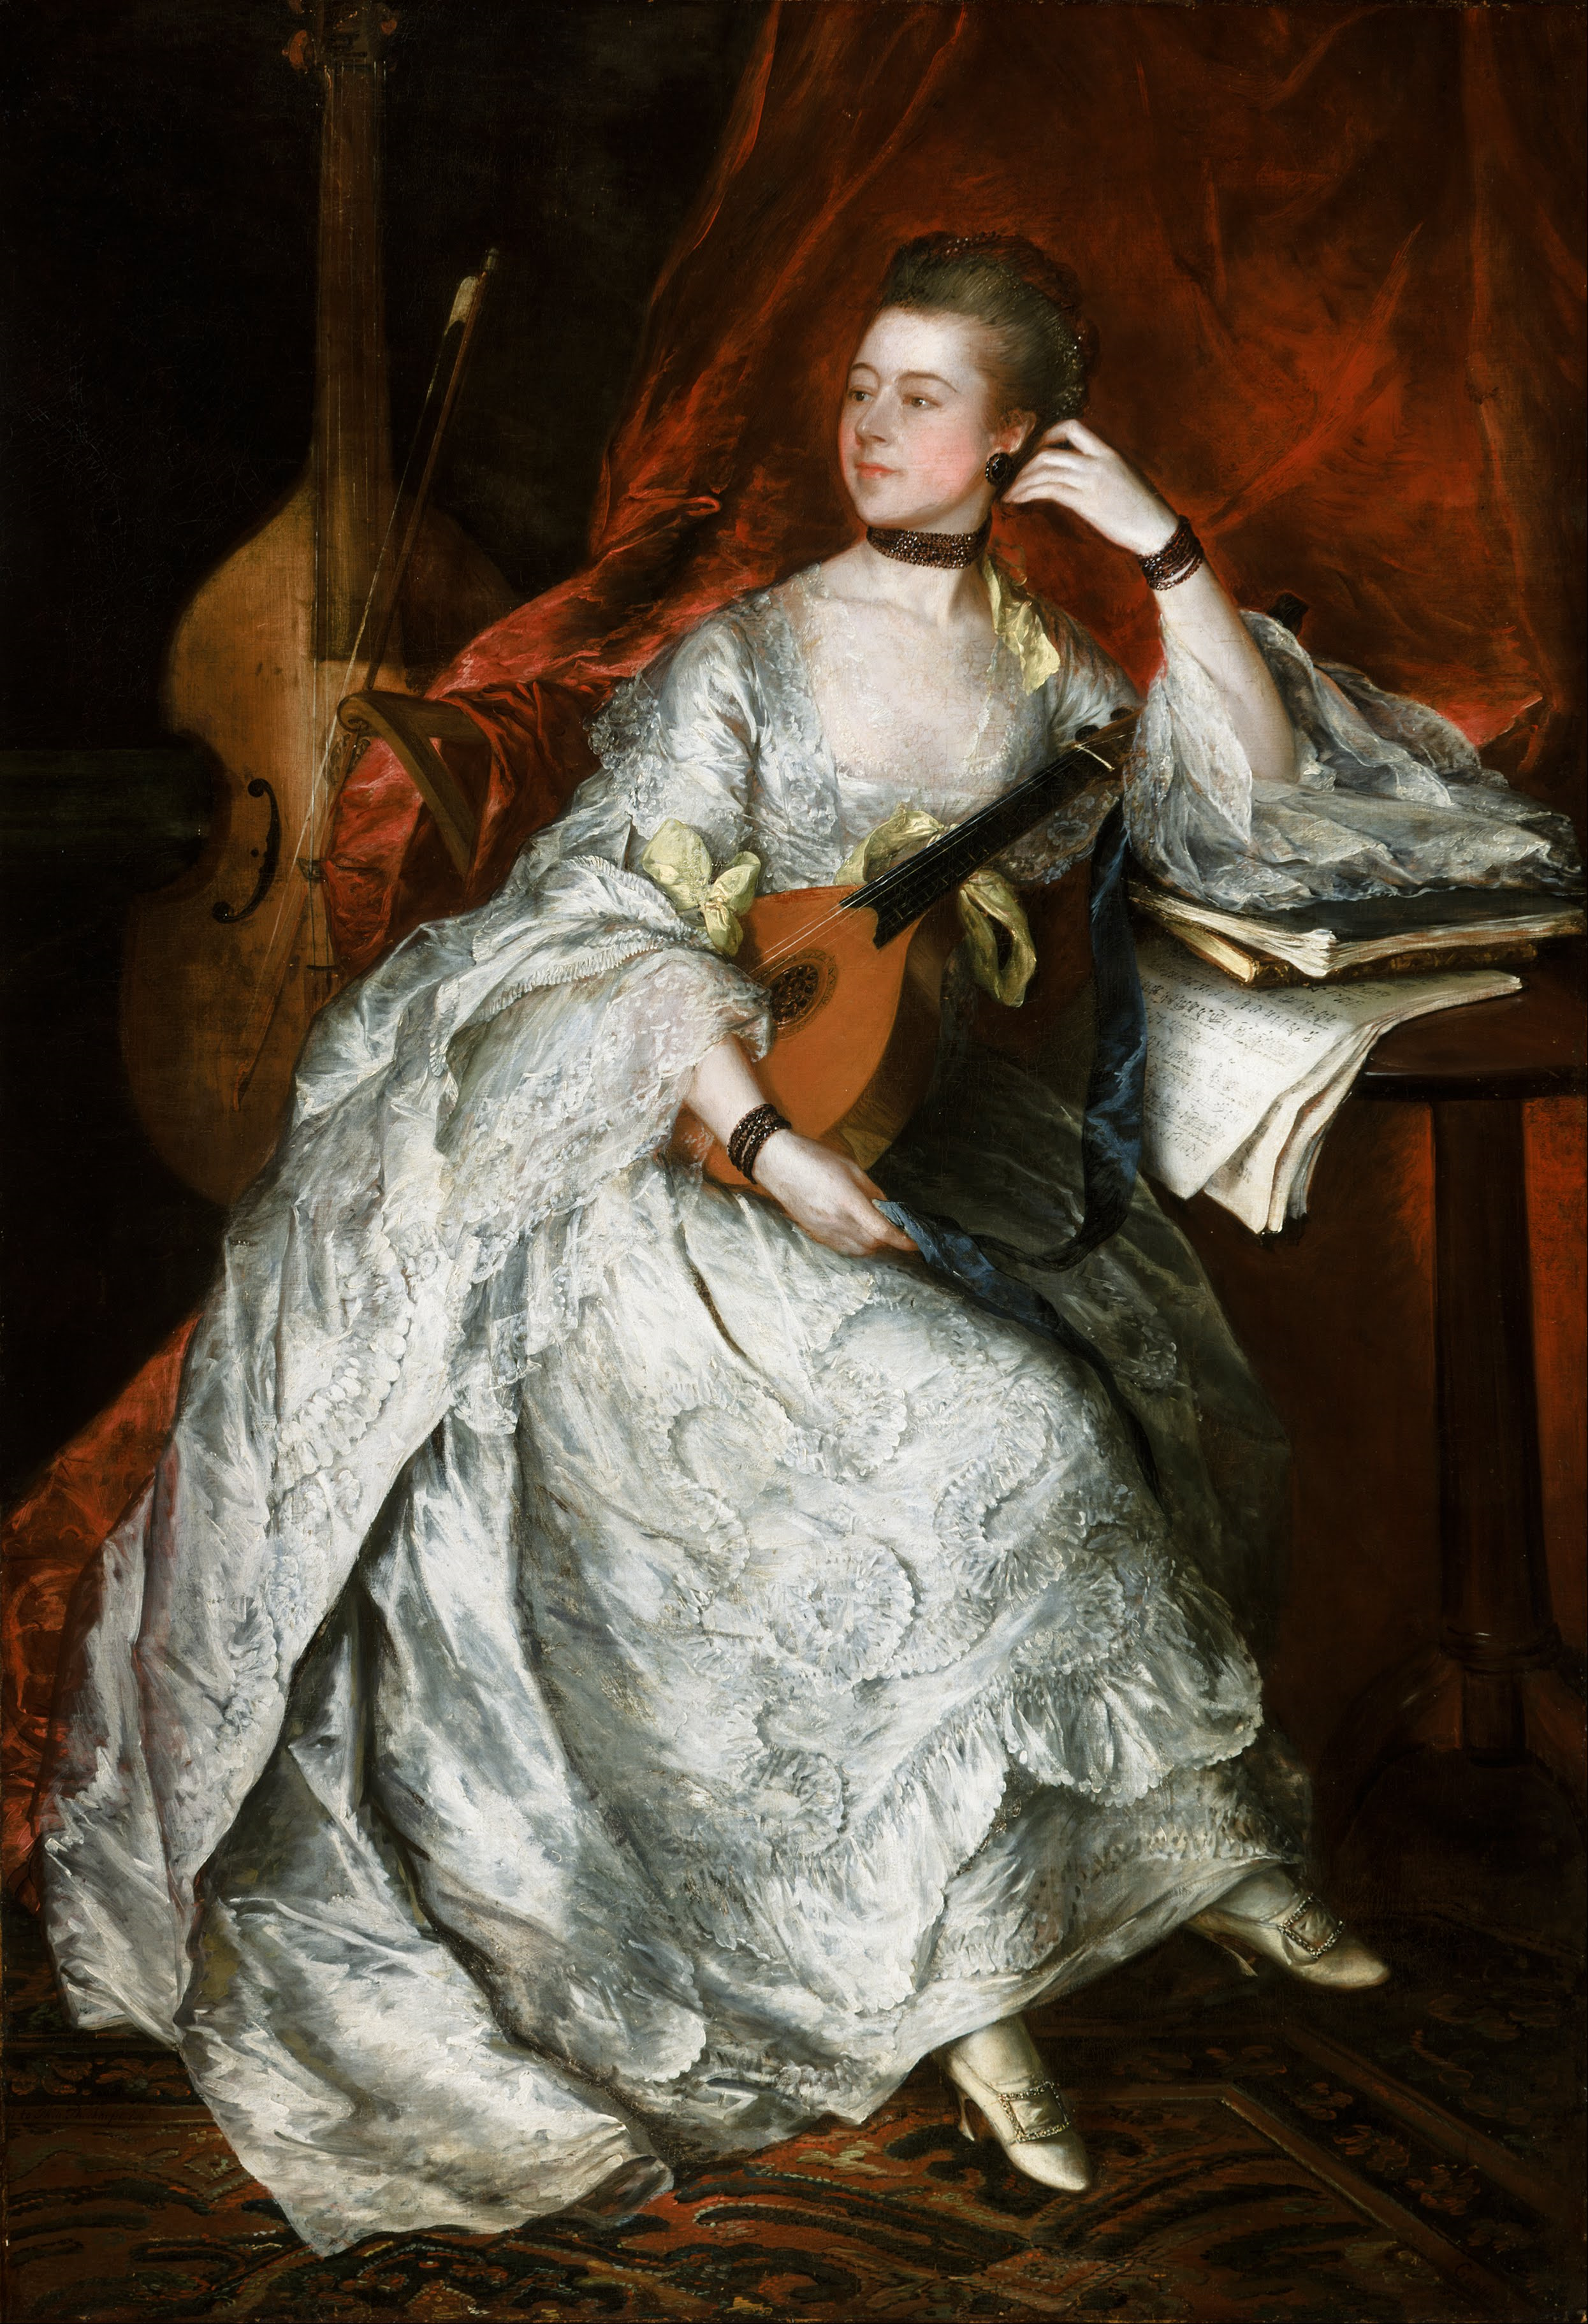 Thomas Gainsborough, Portrait of Ann Ford, 1760,Cincinnati Art Museum, Cincinnati, USA. Art Timeline. This painting was a challenge for society! Paintings film Orlando